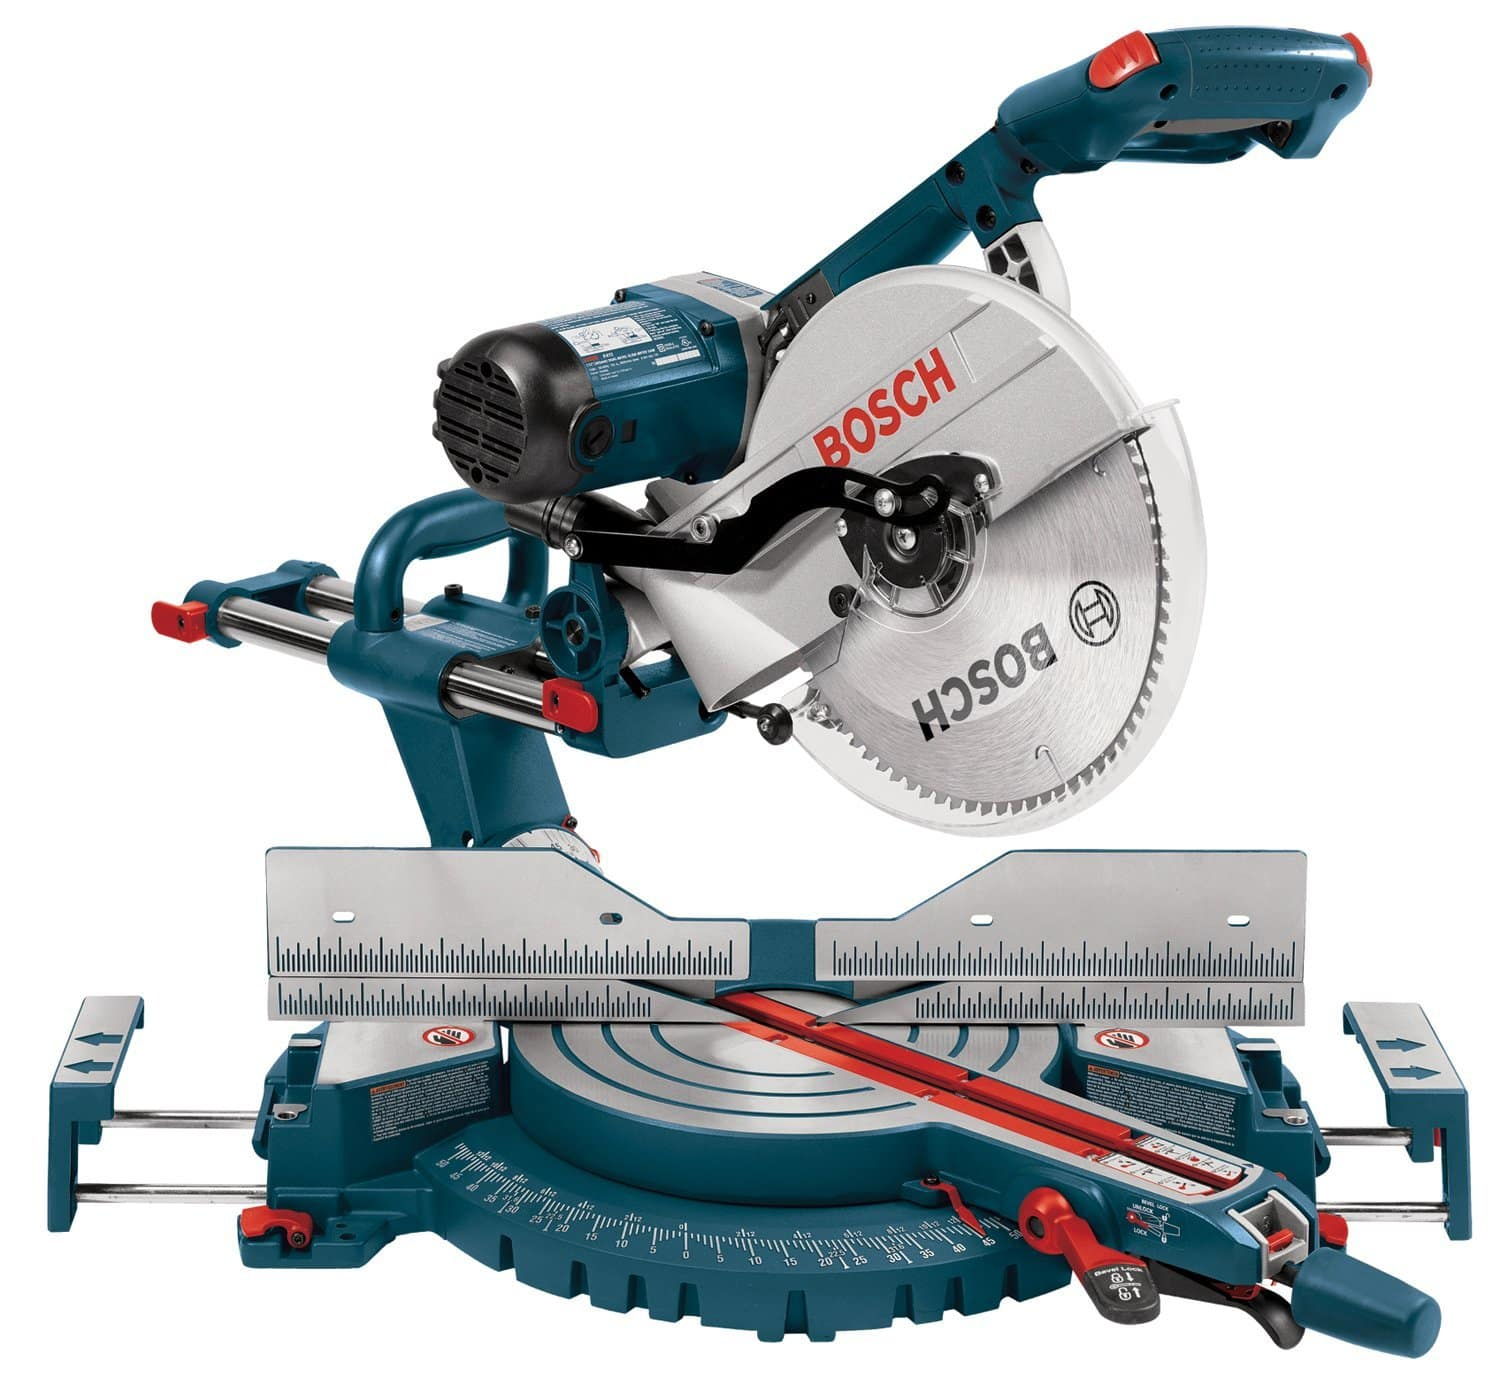 Bosch 5312 12-Inch Dual Bevel Slide Compound Miter Saw - $367 Free Amazon Prime Shipping